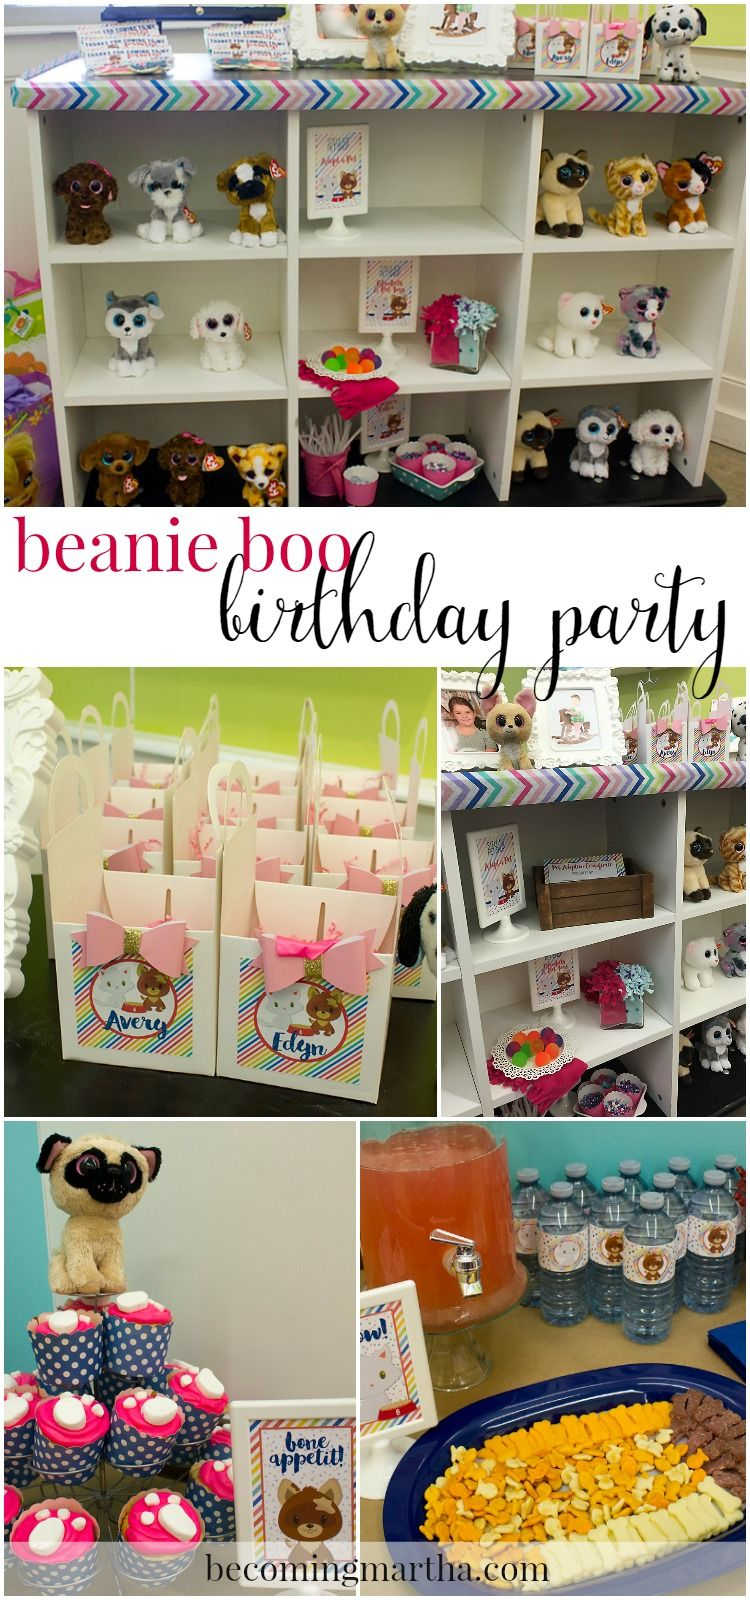 7e1809ea18b This adorable Beanie Boo birthday party was super simple and easy to plan -  and hosting it somewhere like Michaels makes cleanup a breeze!